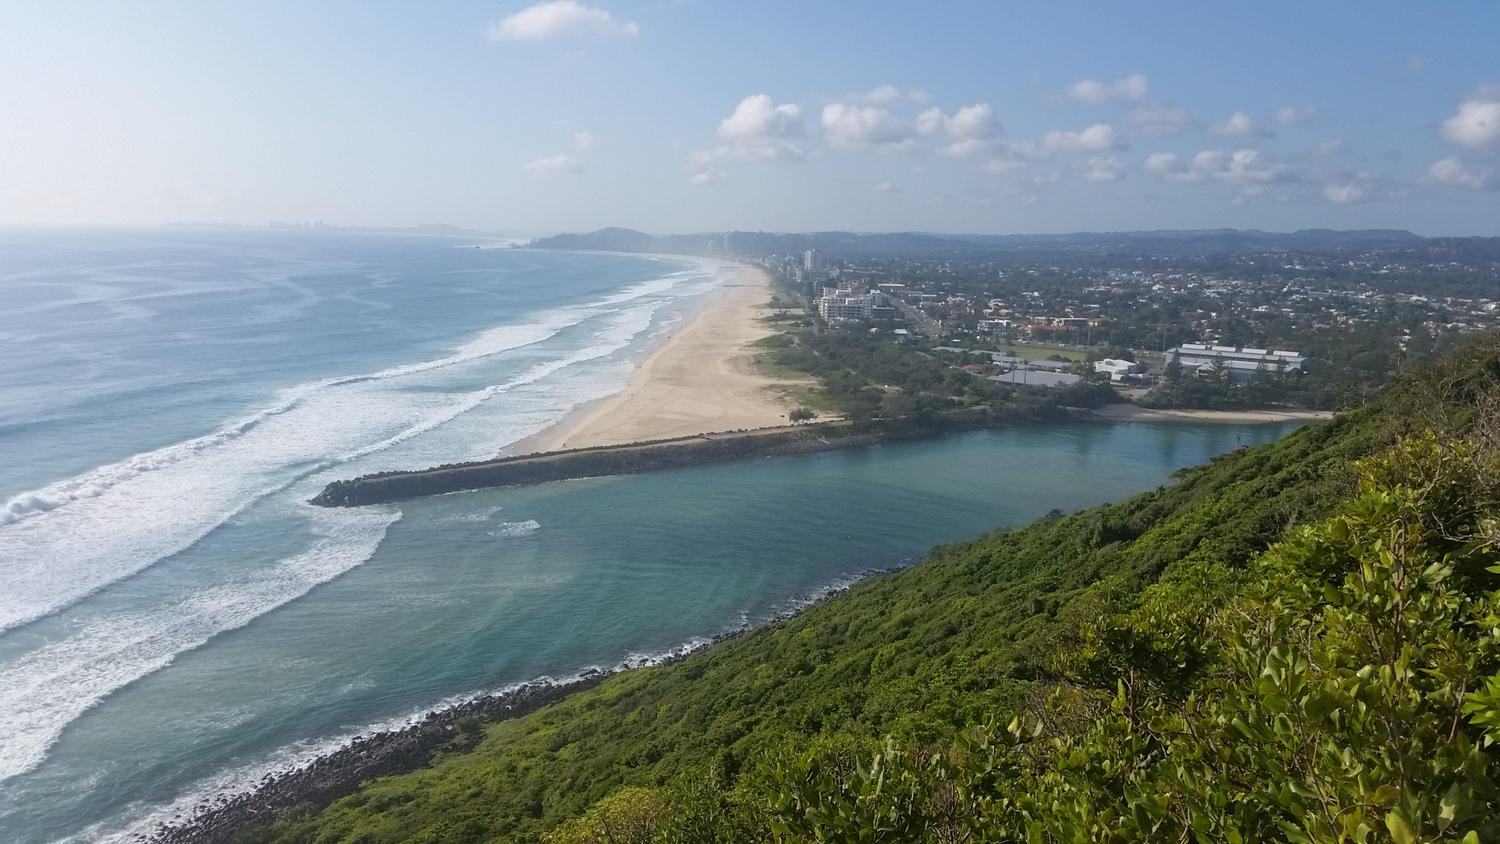 Southern view from the summit of Burleigh Head National Park